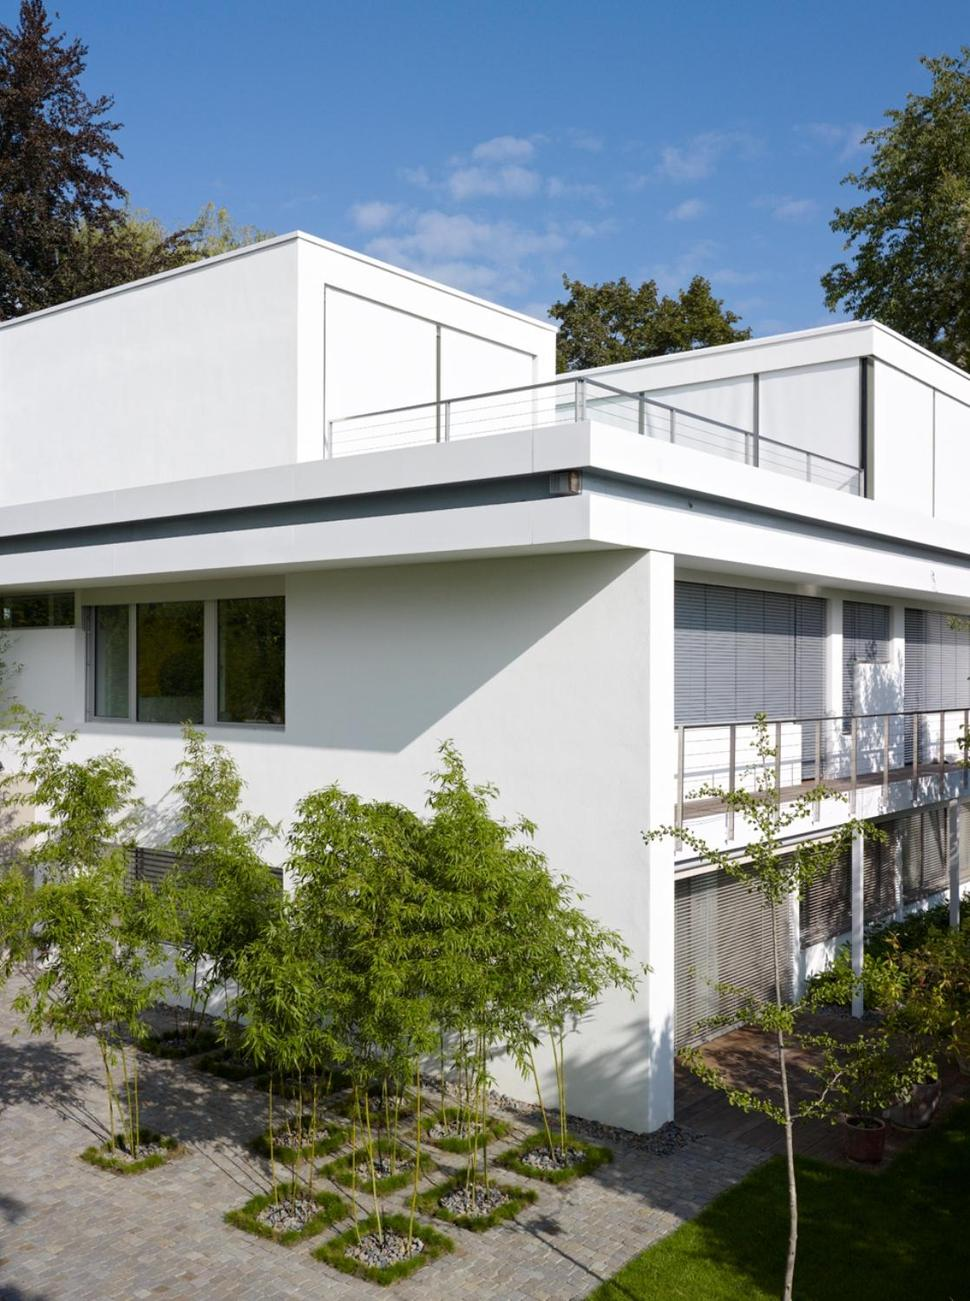 View in gallery contemporary renovation and additon to 60s bungalow 16